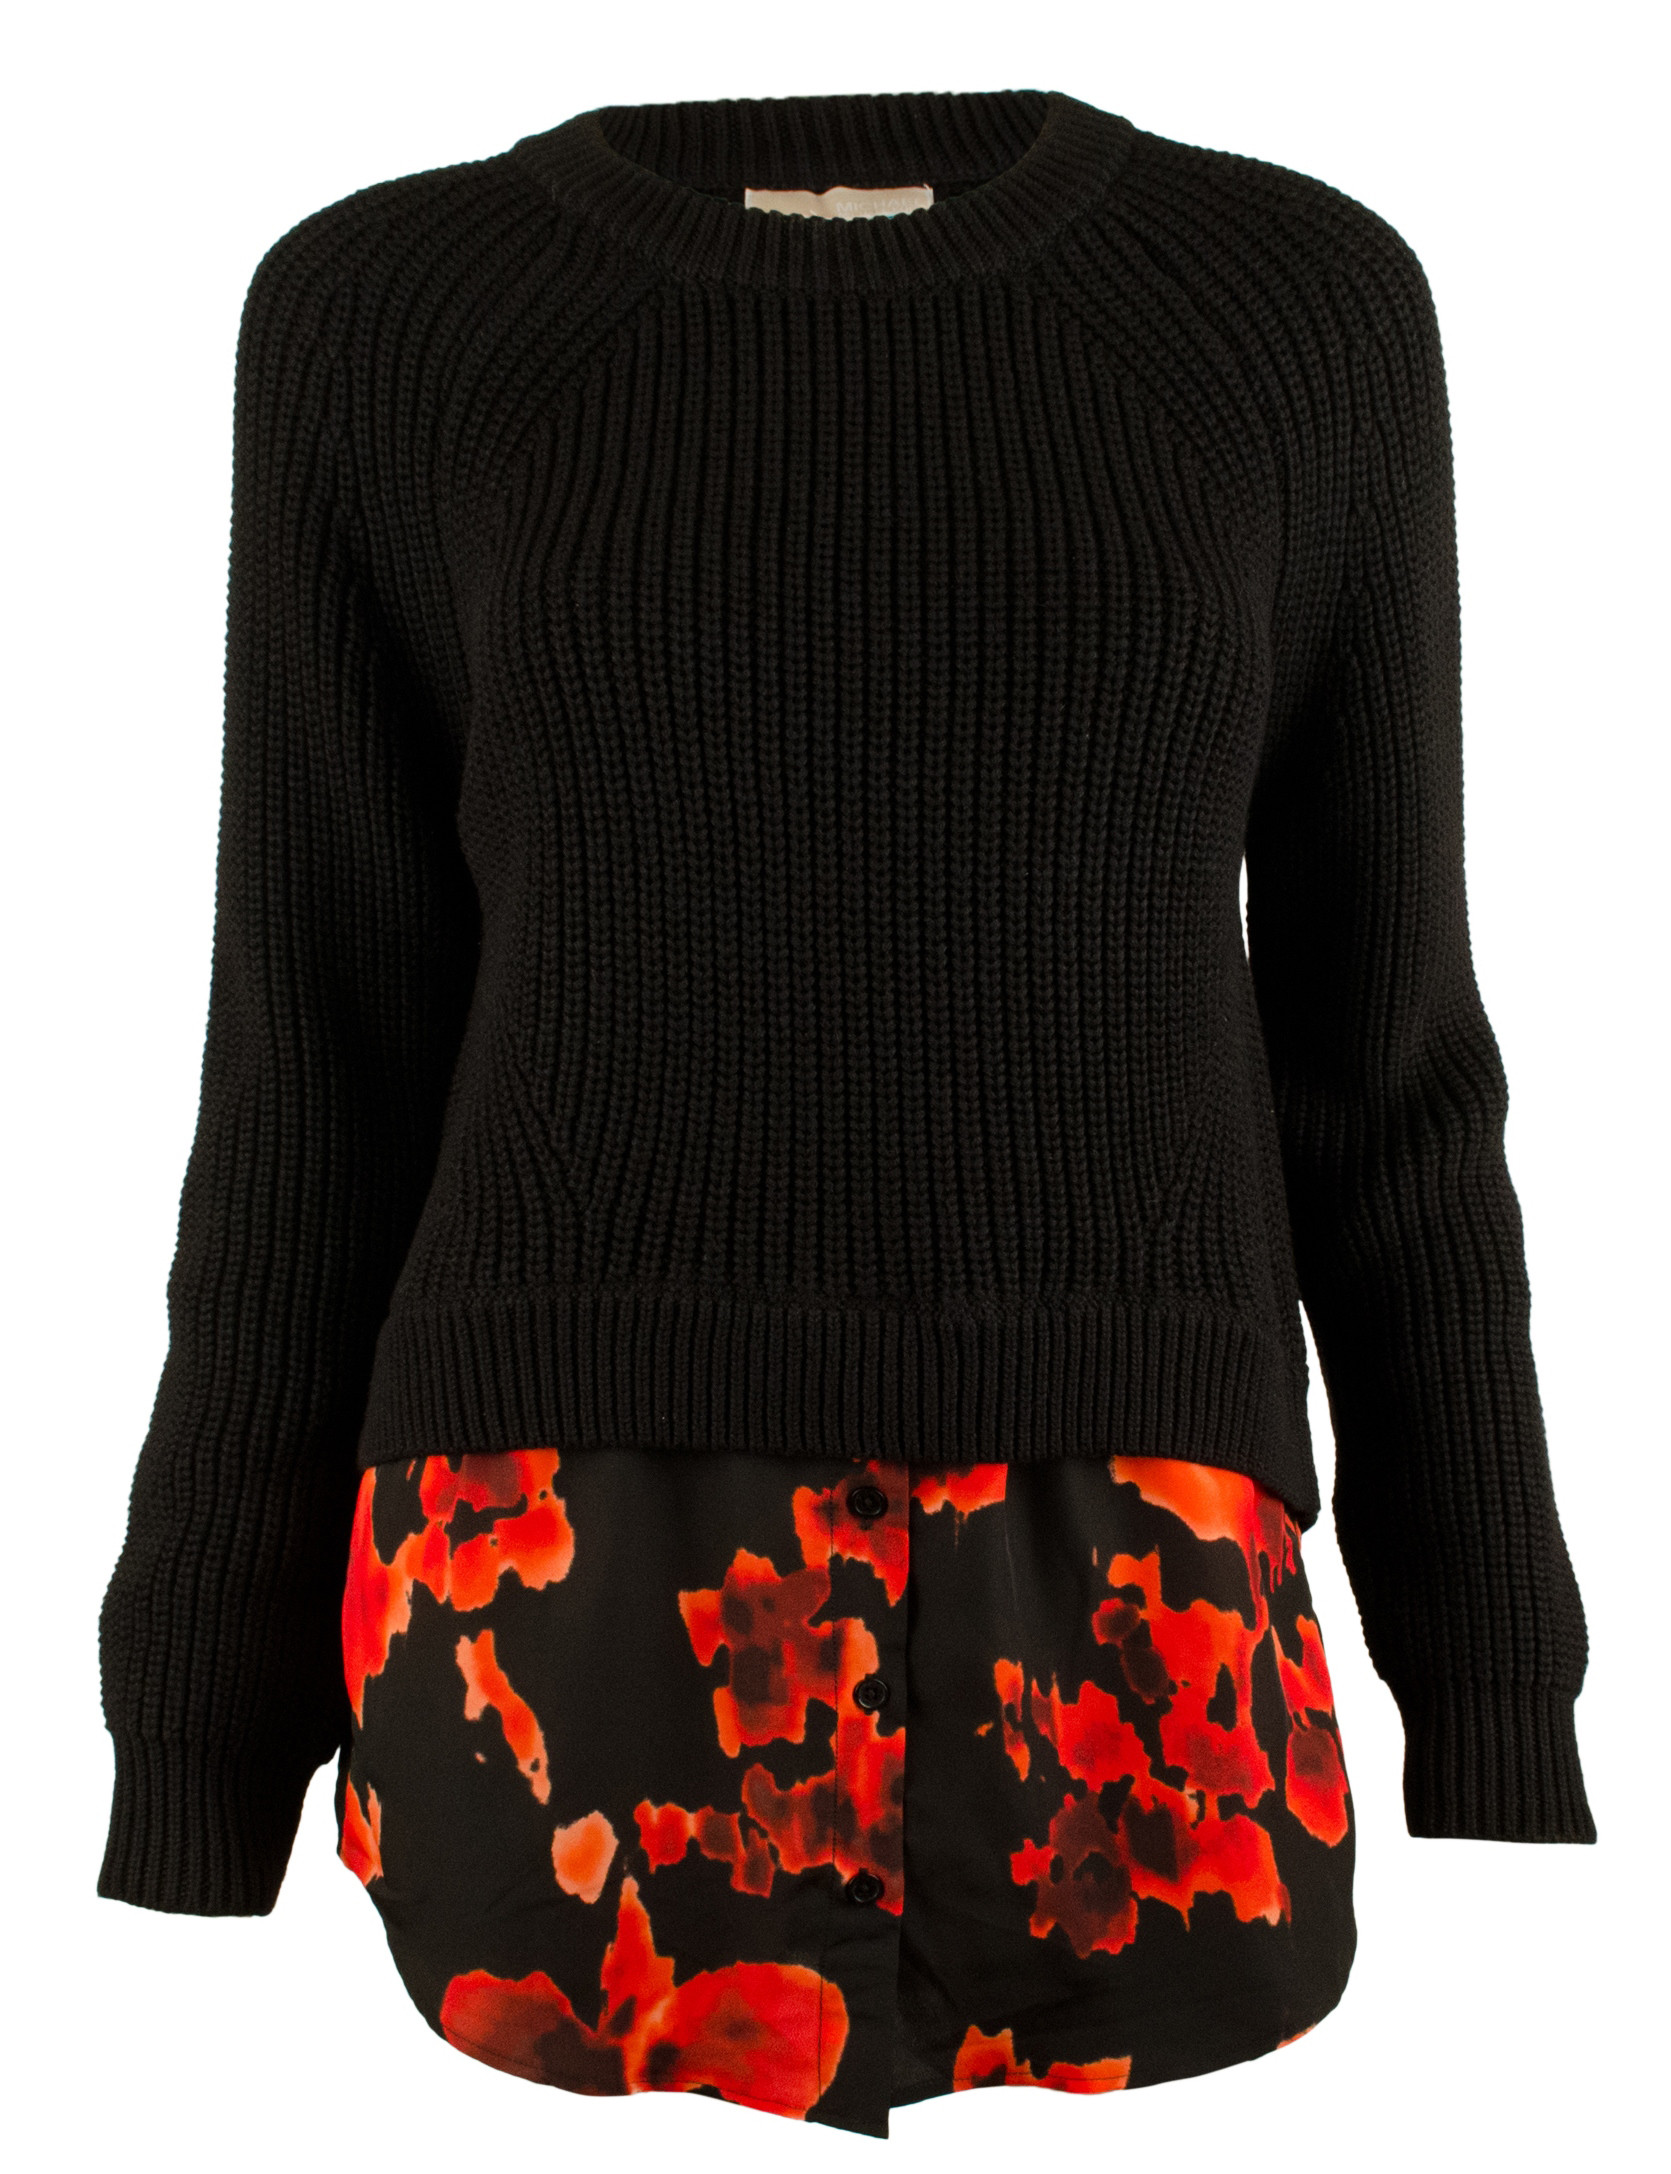 Michael Kors Women s Cropped Printed Layered Look Sweater Top